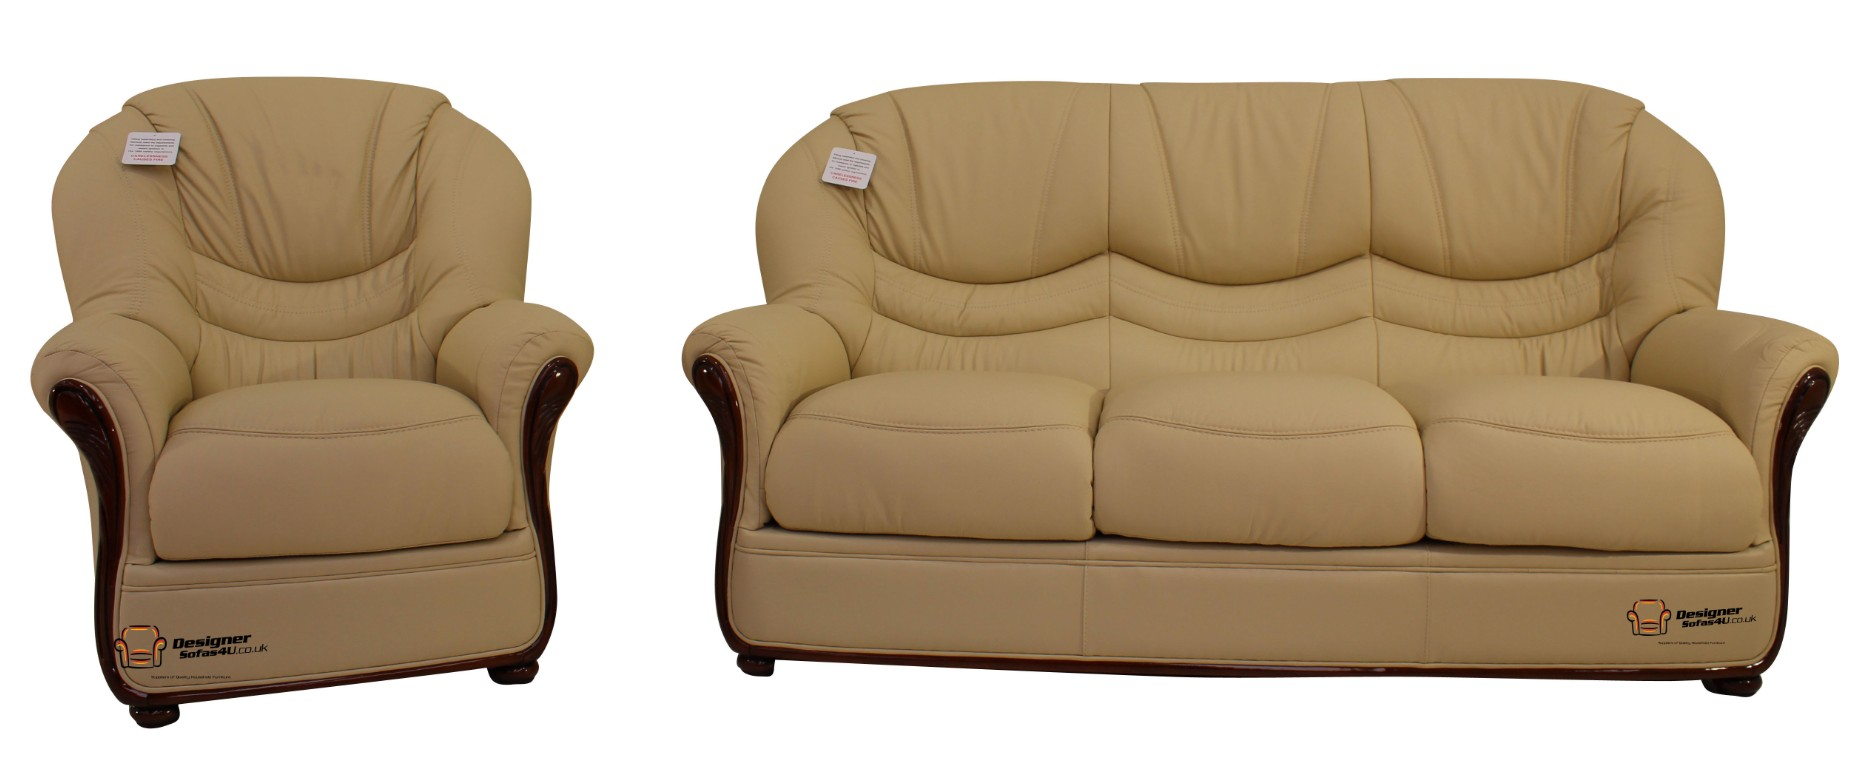 Best 3 1 genuine italian cream leather sofa suite offer leather sofas fabric sofas Italian leather sofa uk